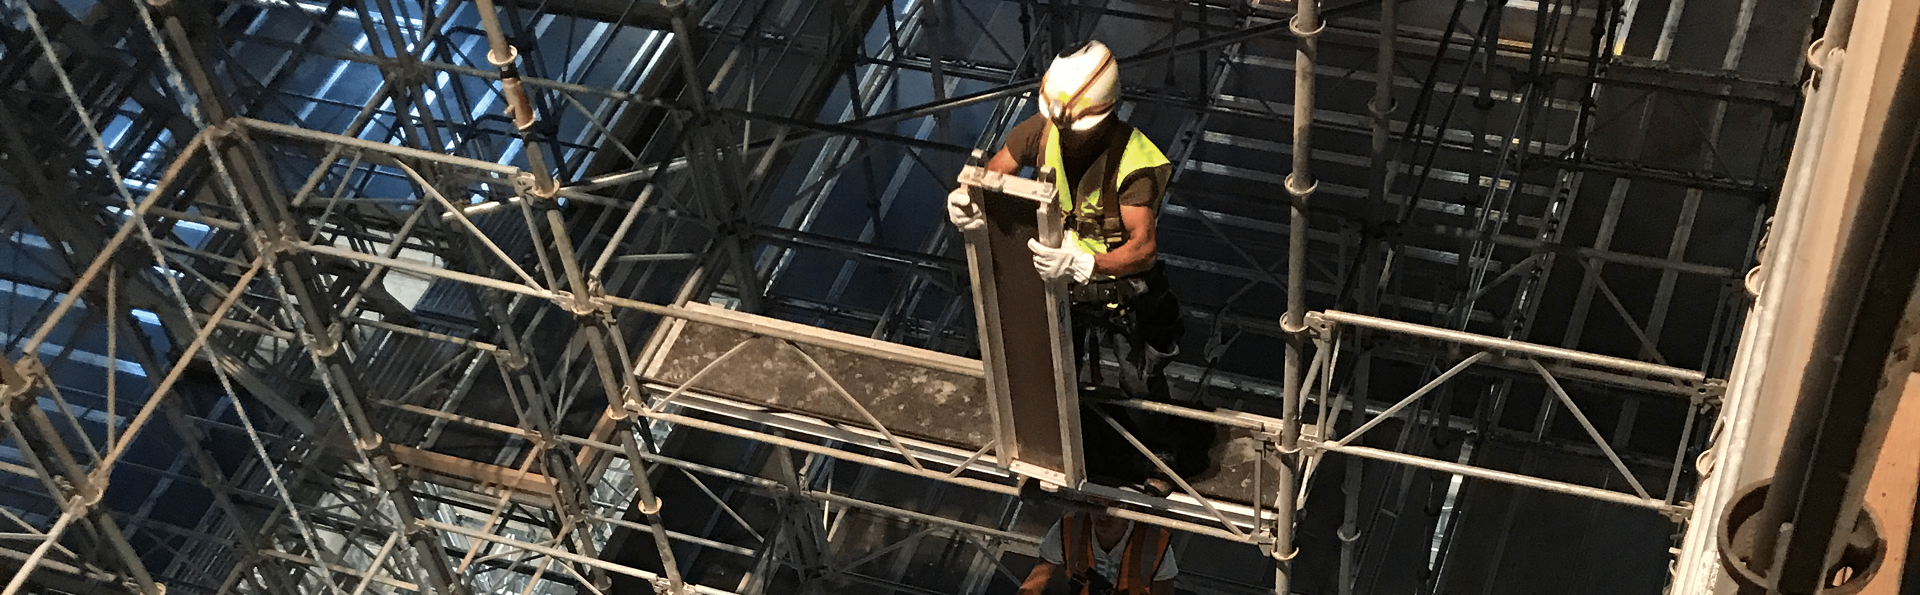 Technical Scaffolding Resources